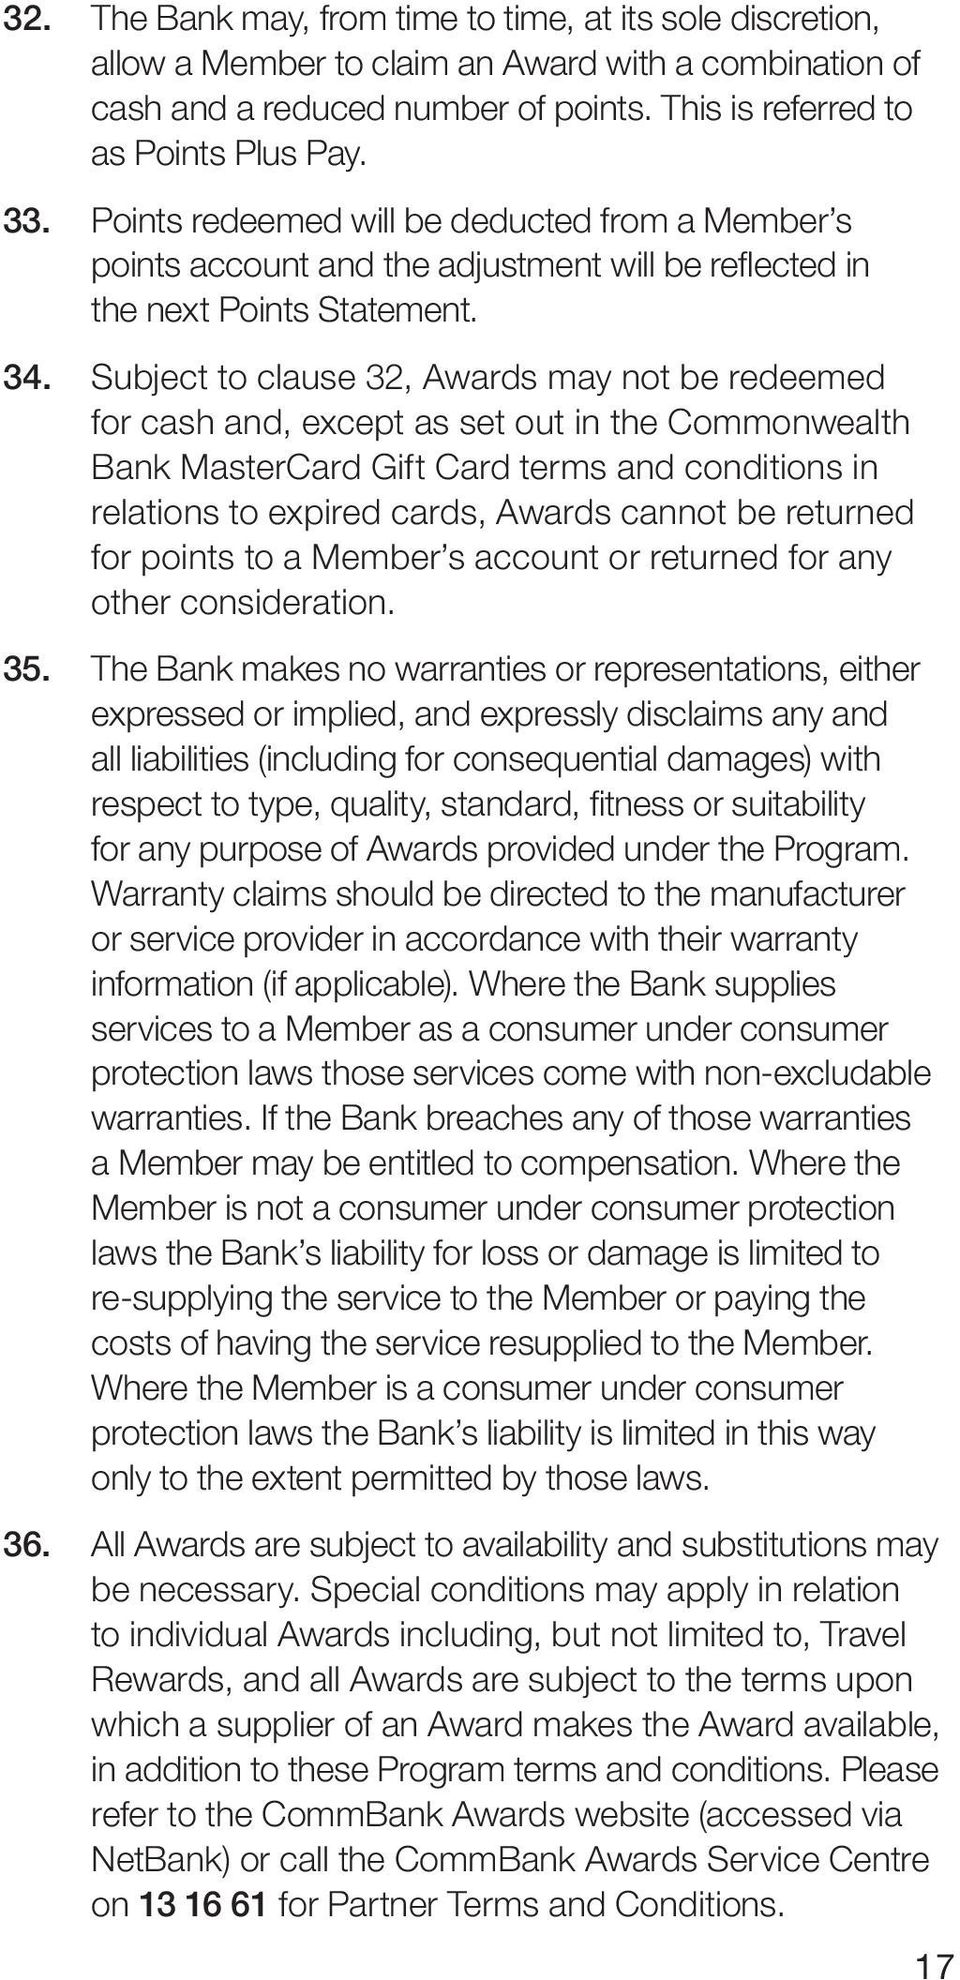 Subject to clause 32, Awards may not be redeemed for cash and, except as set out in the Commonwealth Bank MasterCard Gift Card terms and conditions in relations to expired cards, Awards cannot be